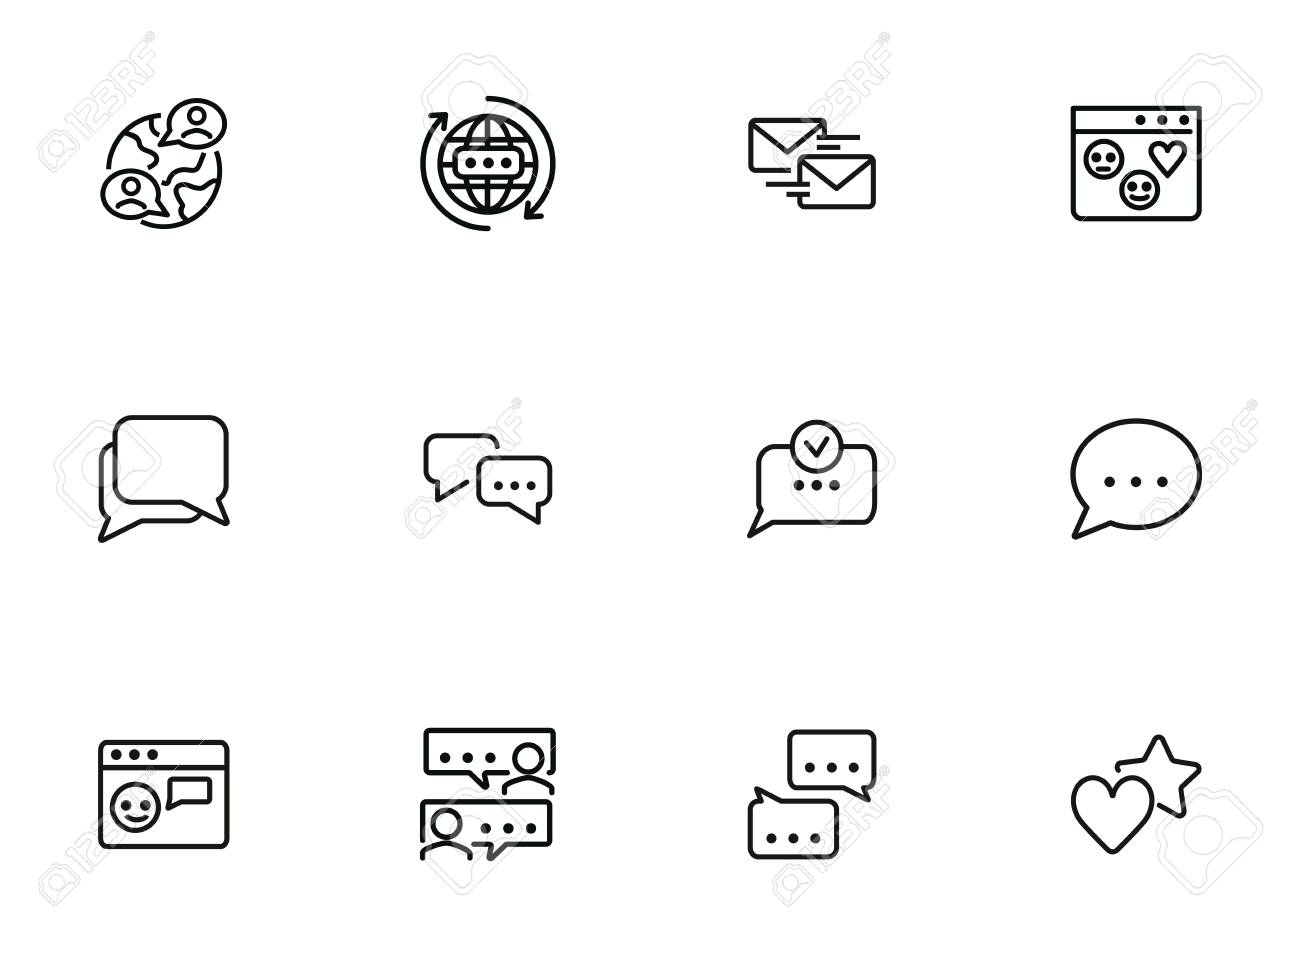 Social media communications line icon set. Set of line icons on white background. Chatting, message, typing. Internet concept. Vector illustration can be used for topics like web, communication - 126644833